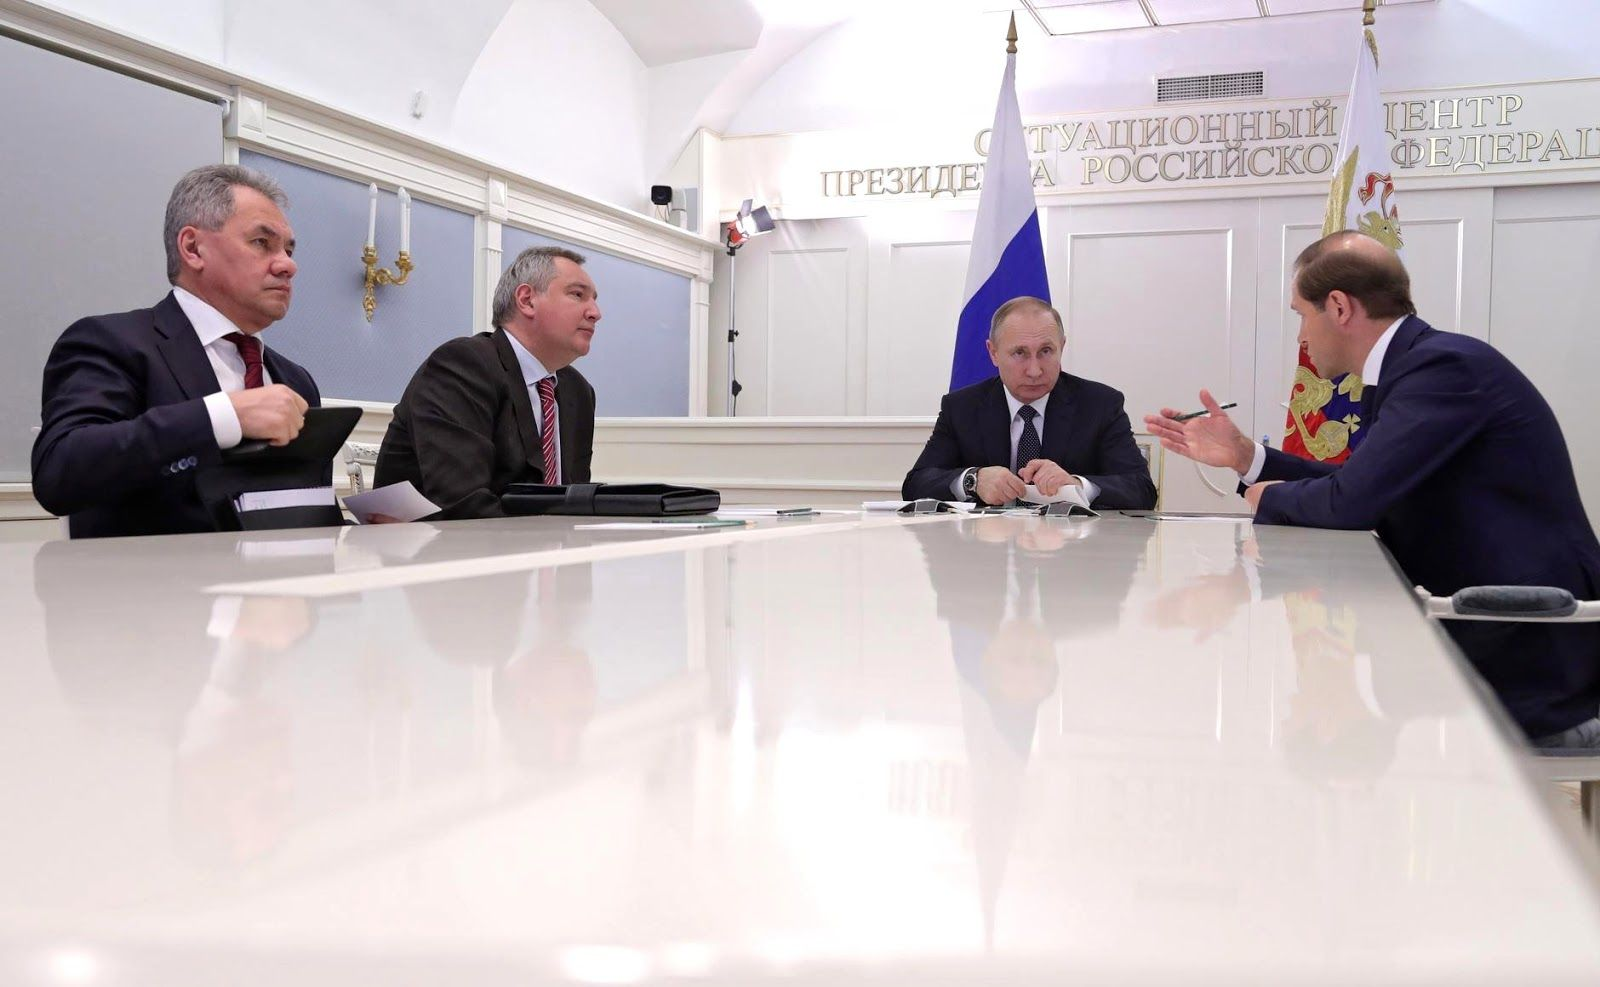 Videoconference with Russian Aircraft Corporation MiG. With Defence Minister Sergei Shoigu (left), Deputy Prime Minister Dmitry Rogozin and Industry and Trade Minister Denis Manturov (right).